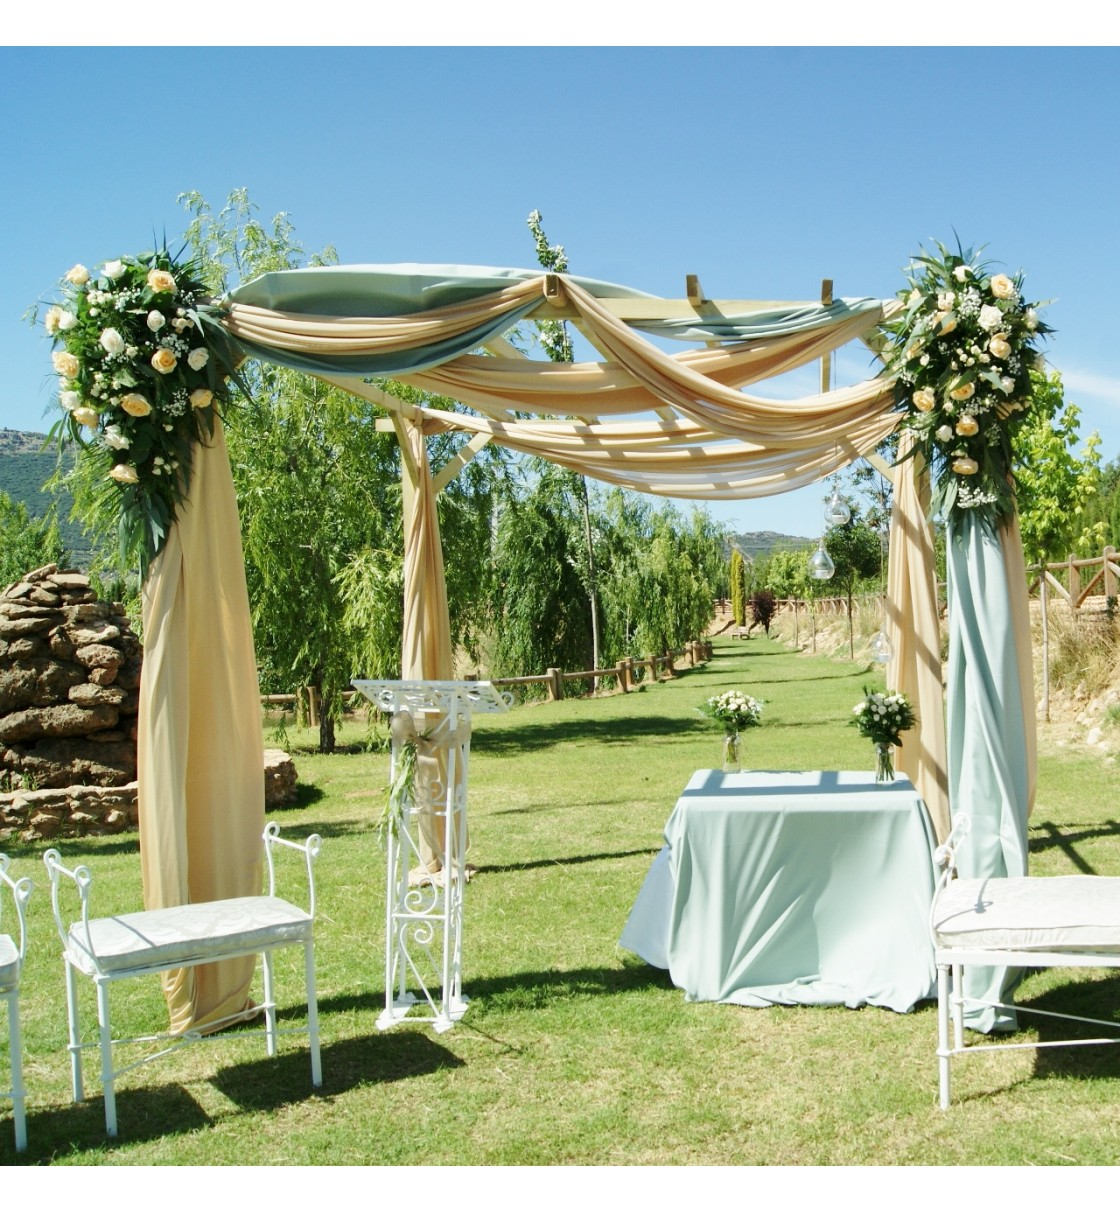 Decoraci n de boda civil en fuente taray - Adornos boda civil ...